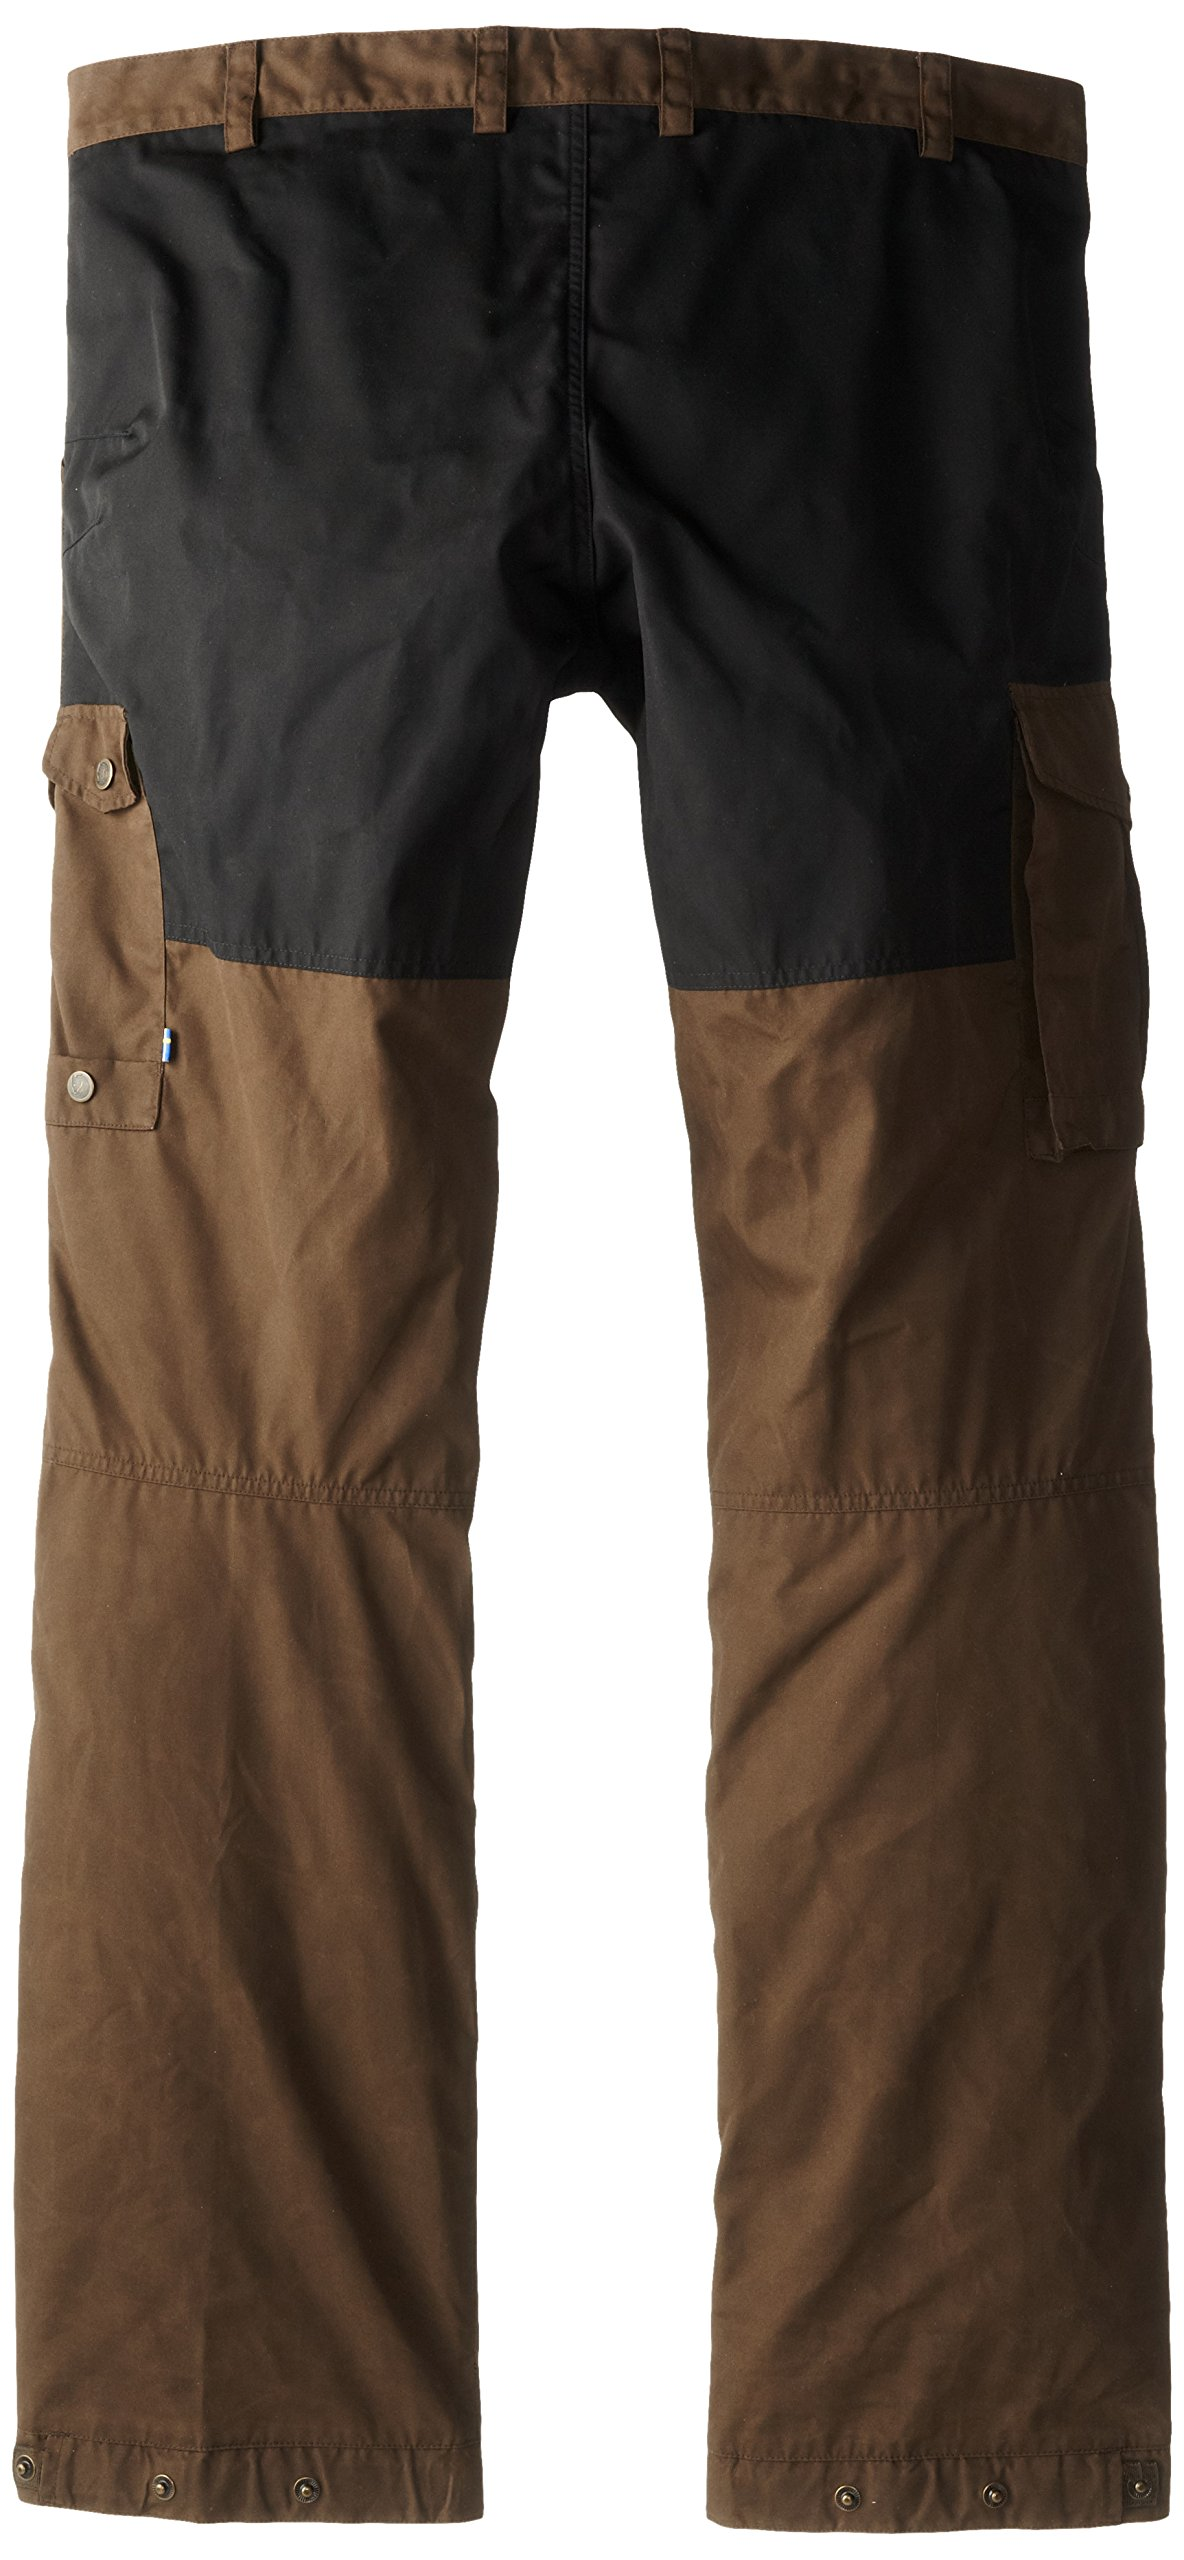 Fjallraven Men's Vidda Pro Trousers, Dark Olive, 50 by Fjallraven (Image #2)